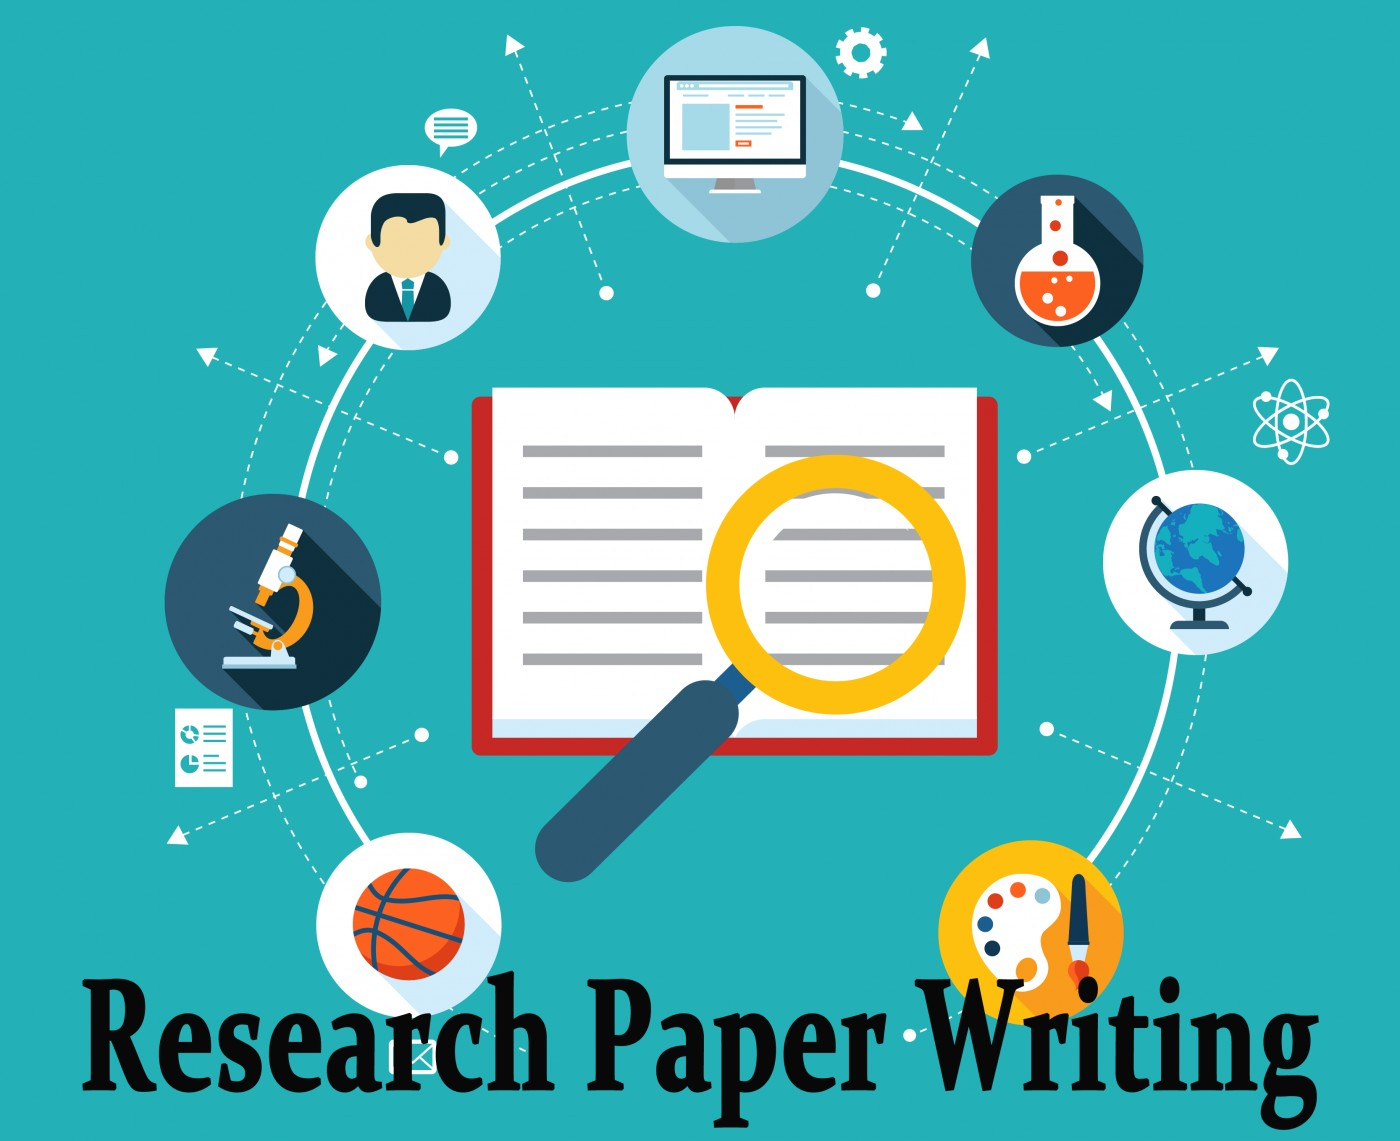 022 Writting Research Paper 503 Effective Writing Dreaded A Tips For Introduction Proposal Template In Apa Format 1400